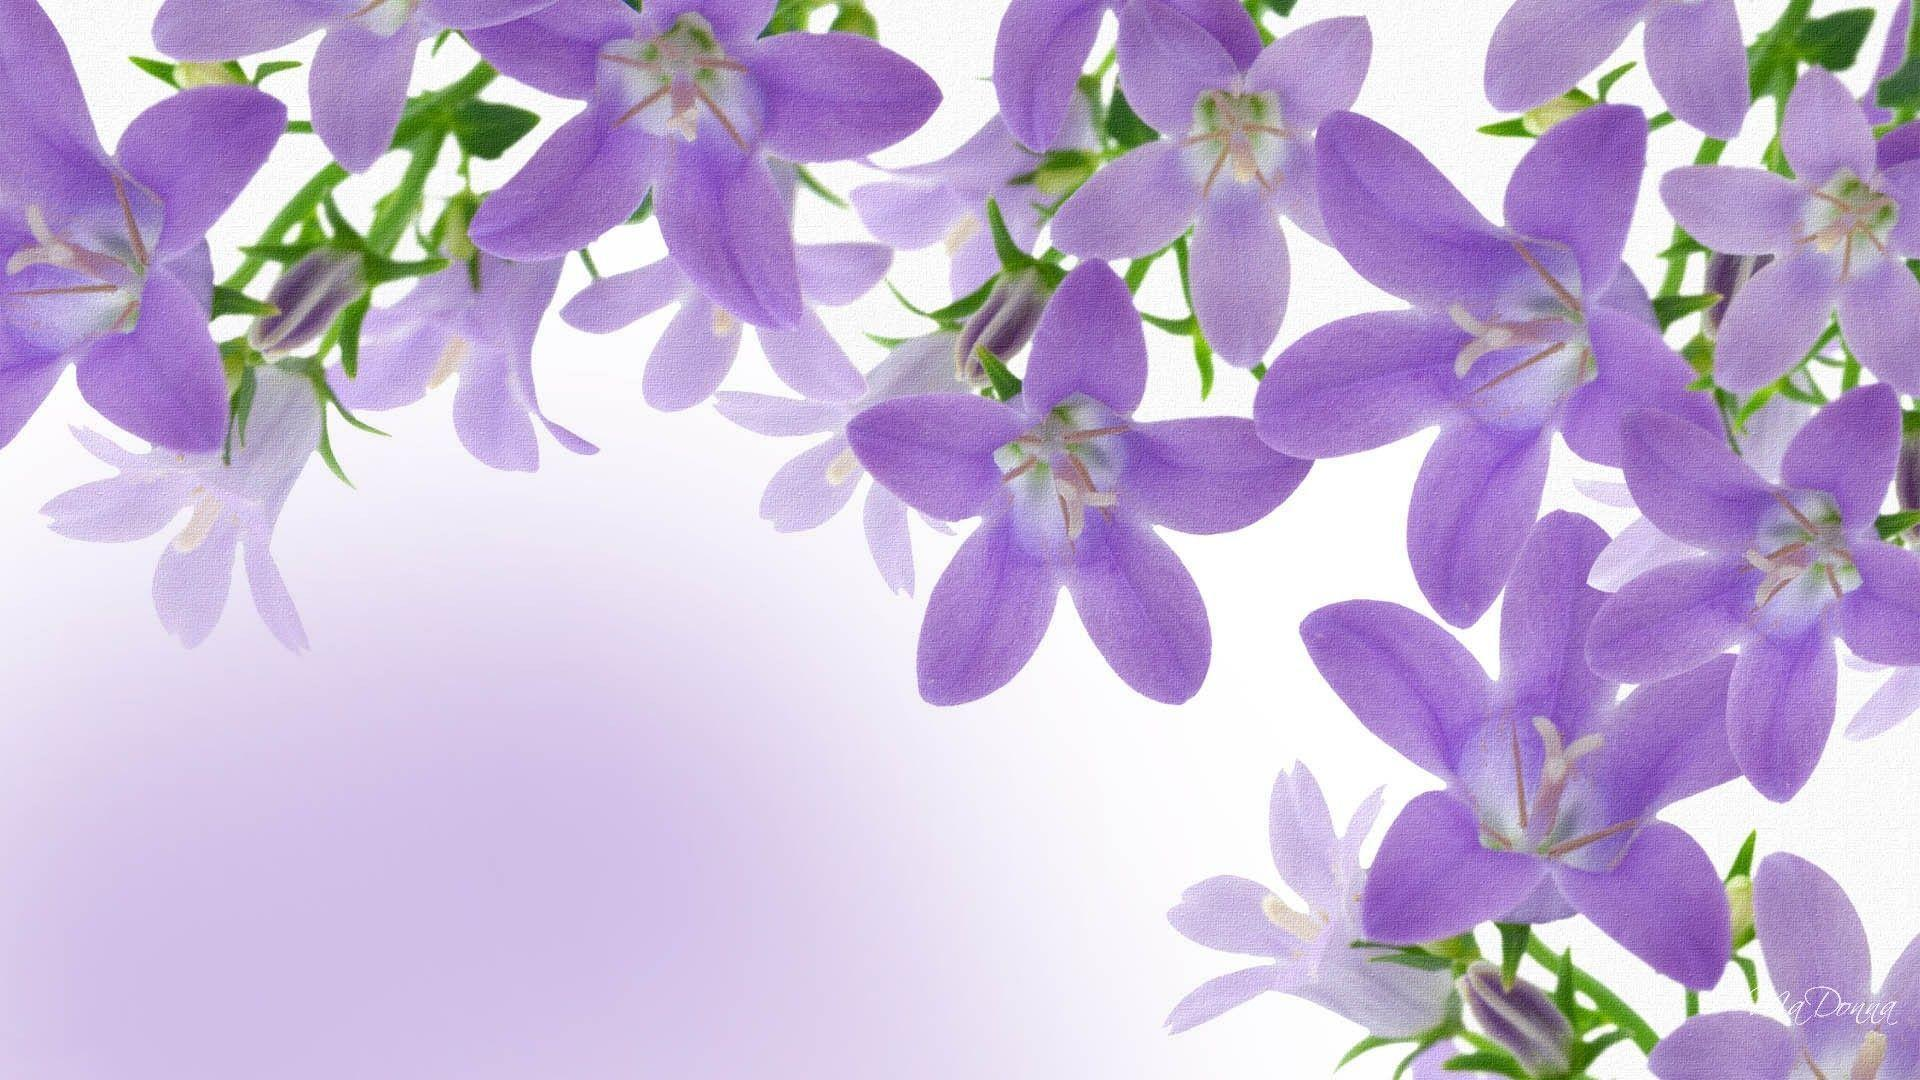 lavender color wallpaper hd - photo #18